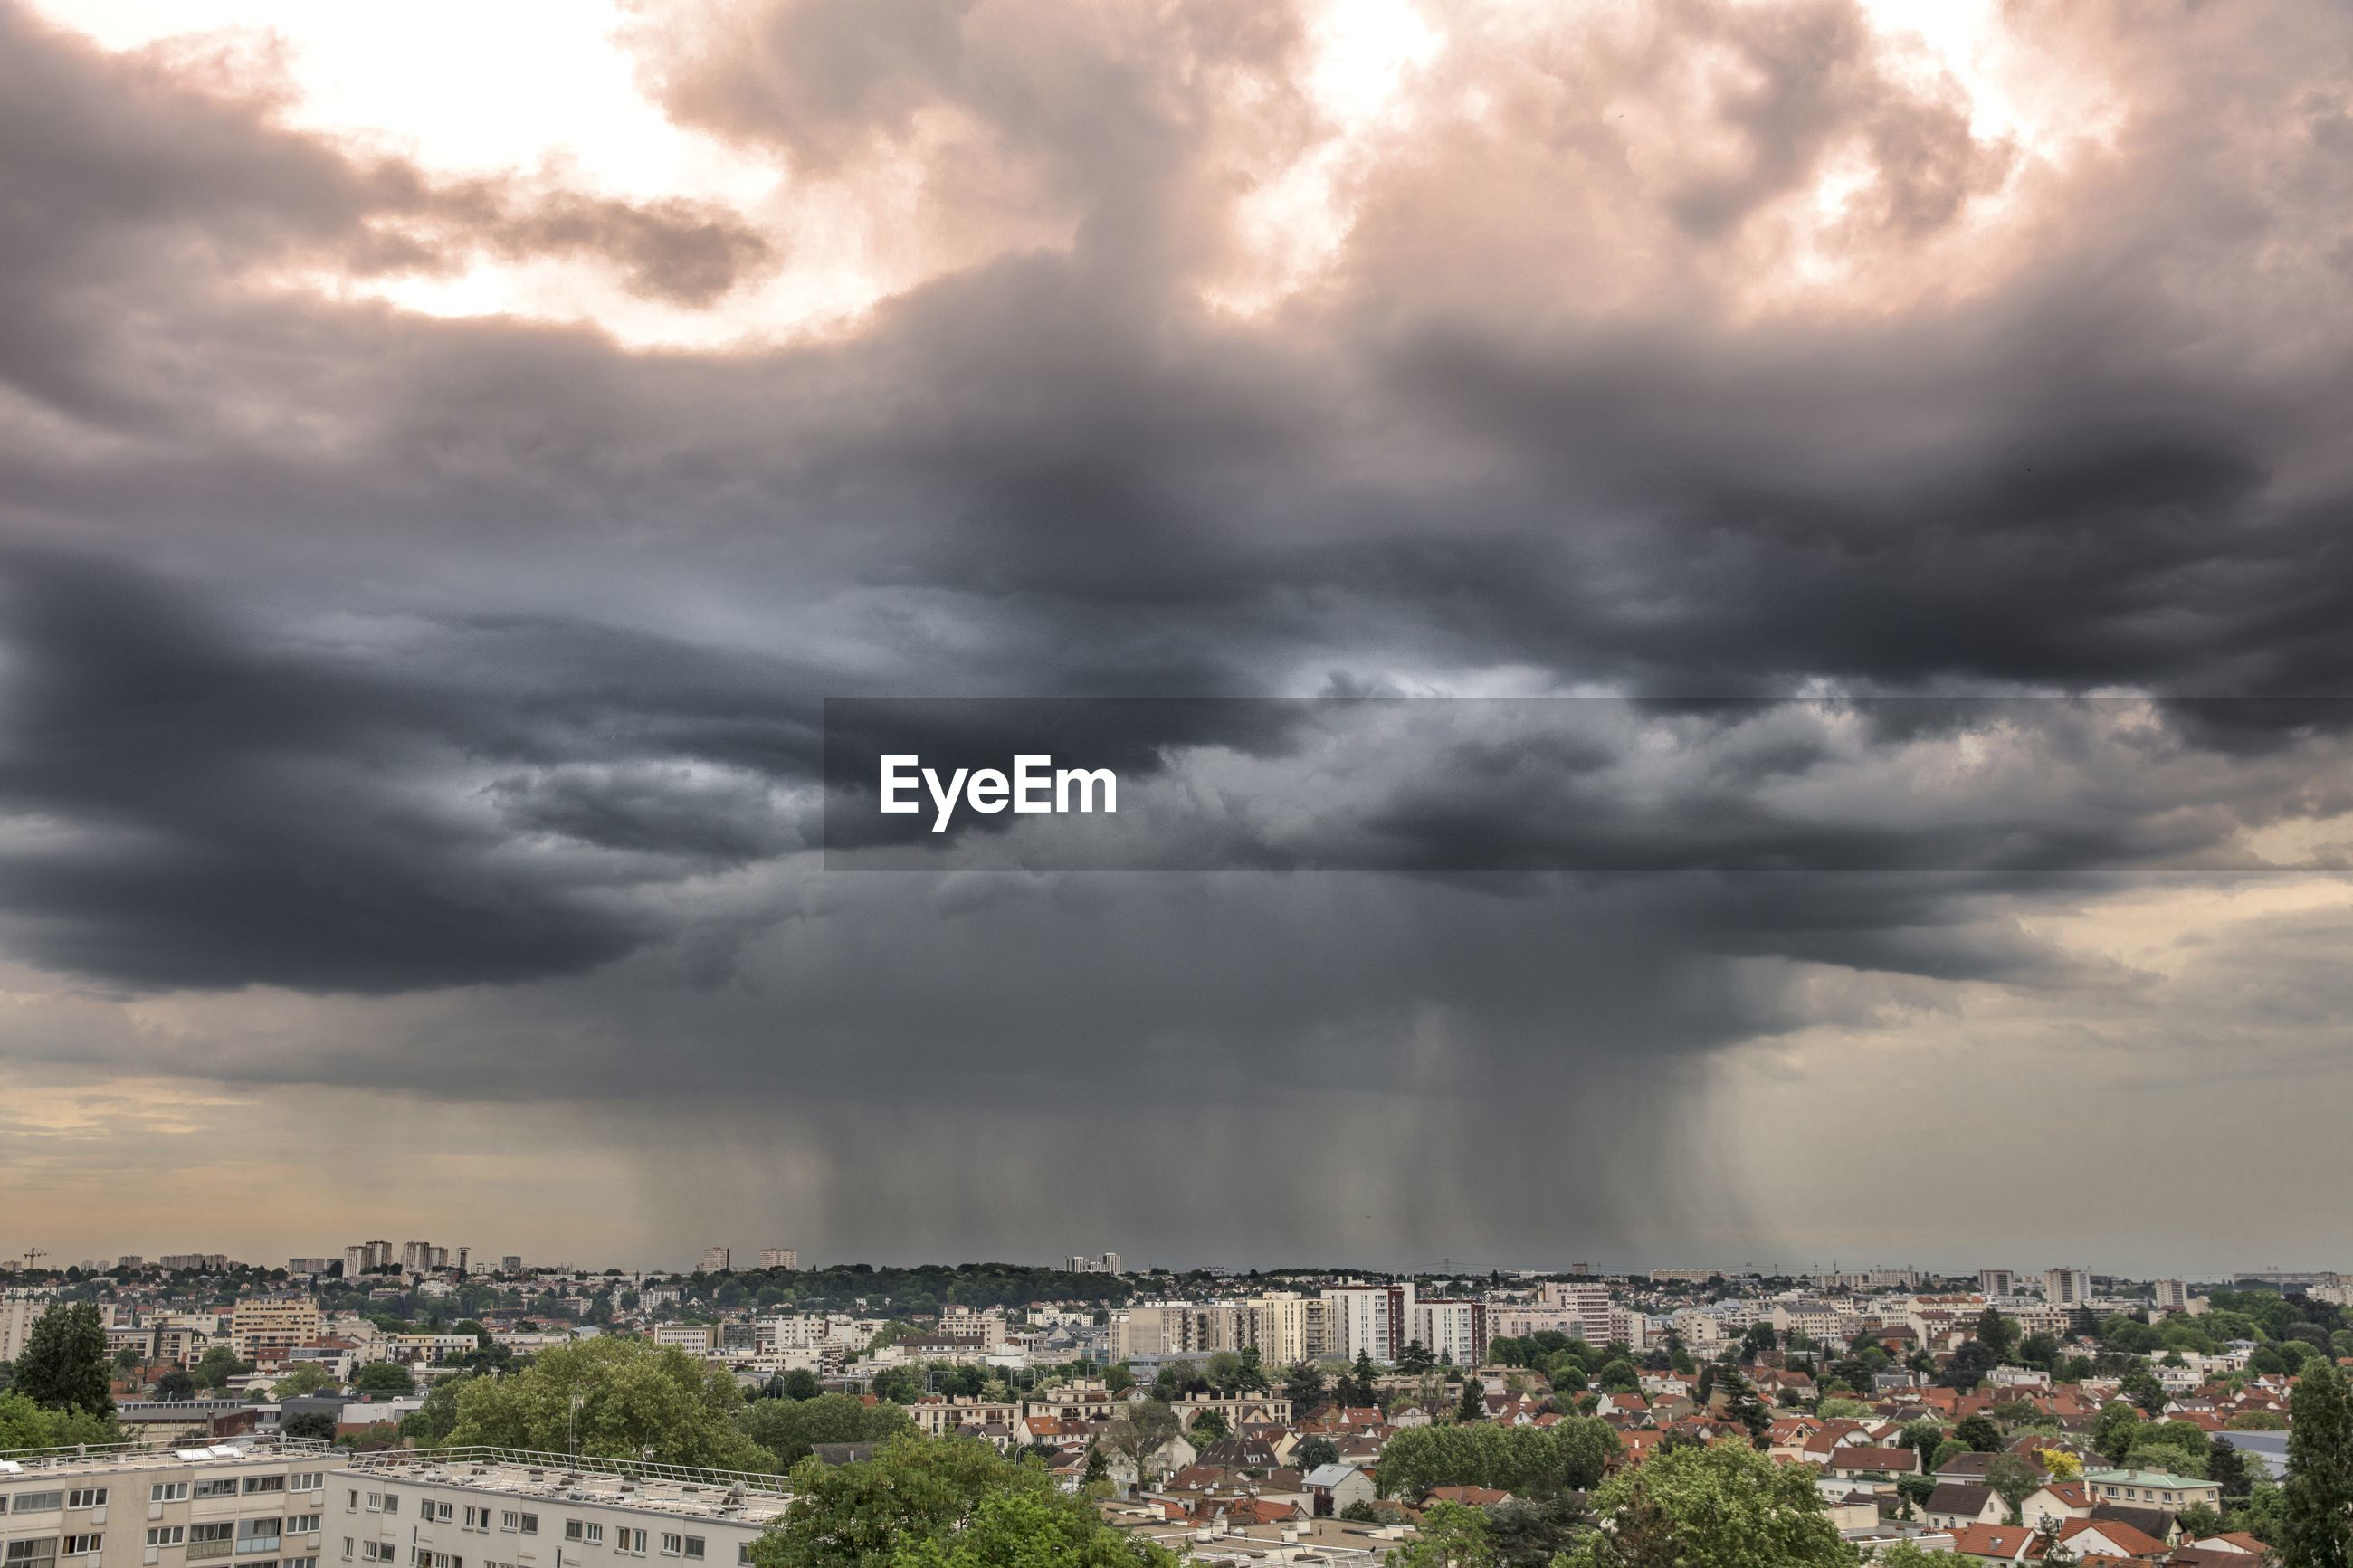 Aerial view of city against dramatic sky